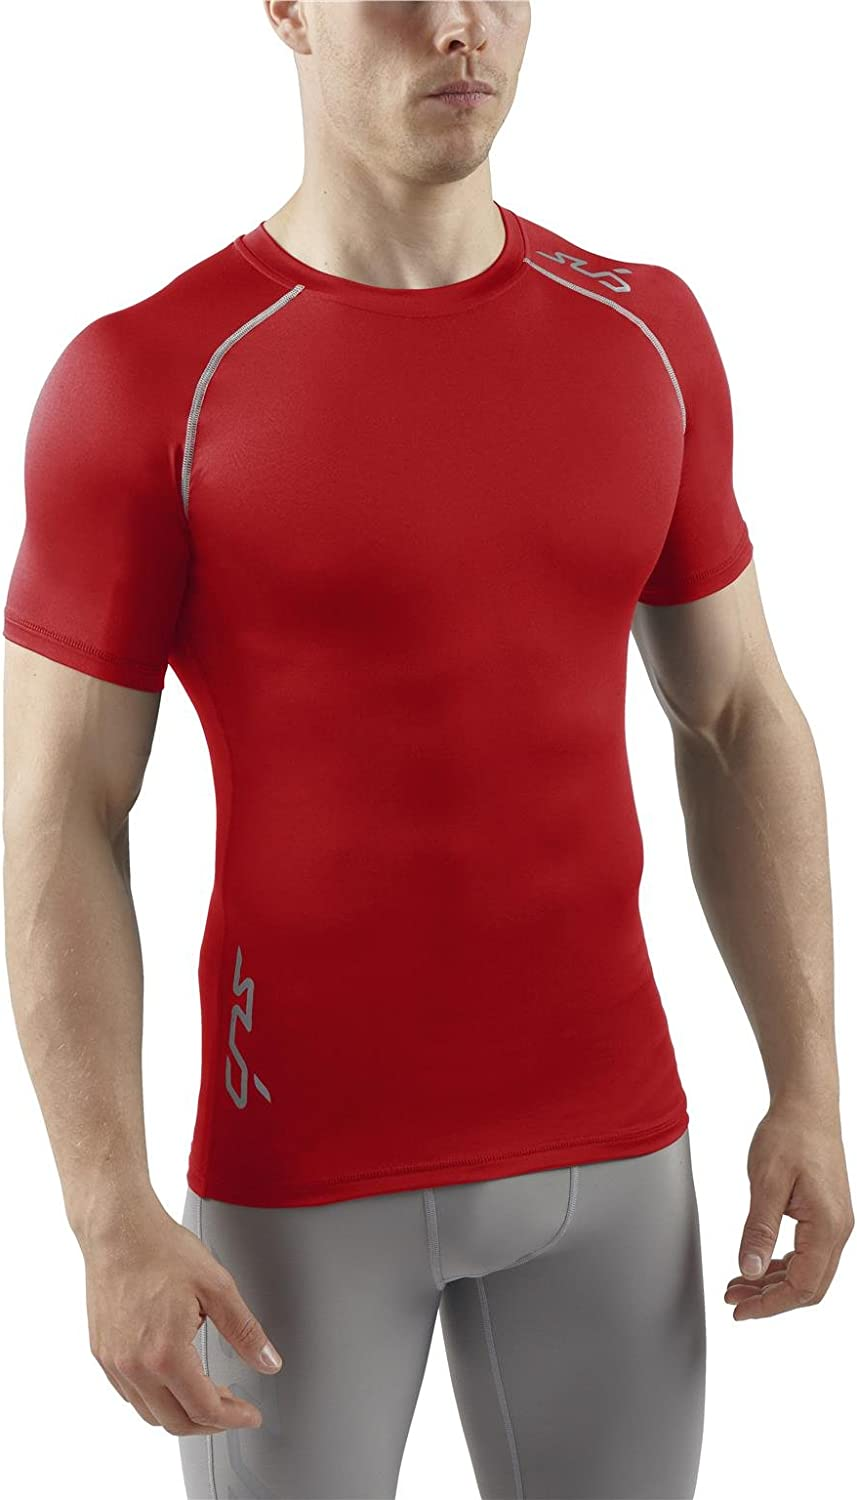 Sub Sports Mens Heat Stay Cool Semi Compression Short Sleeve Base Layer